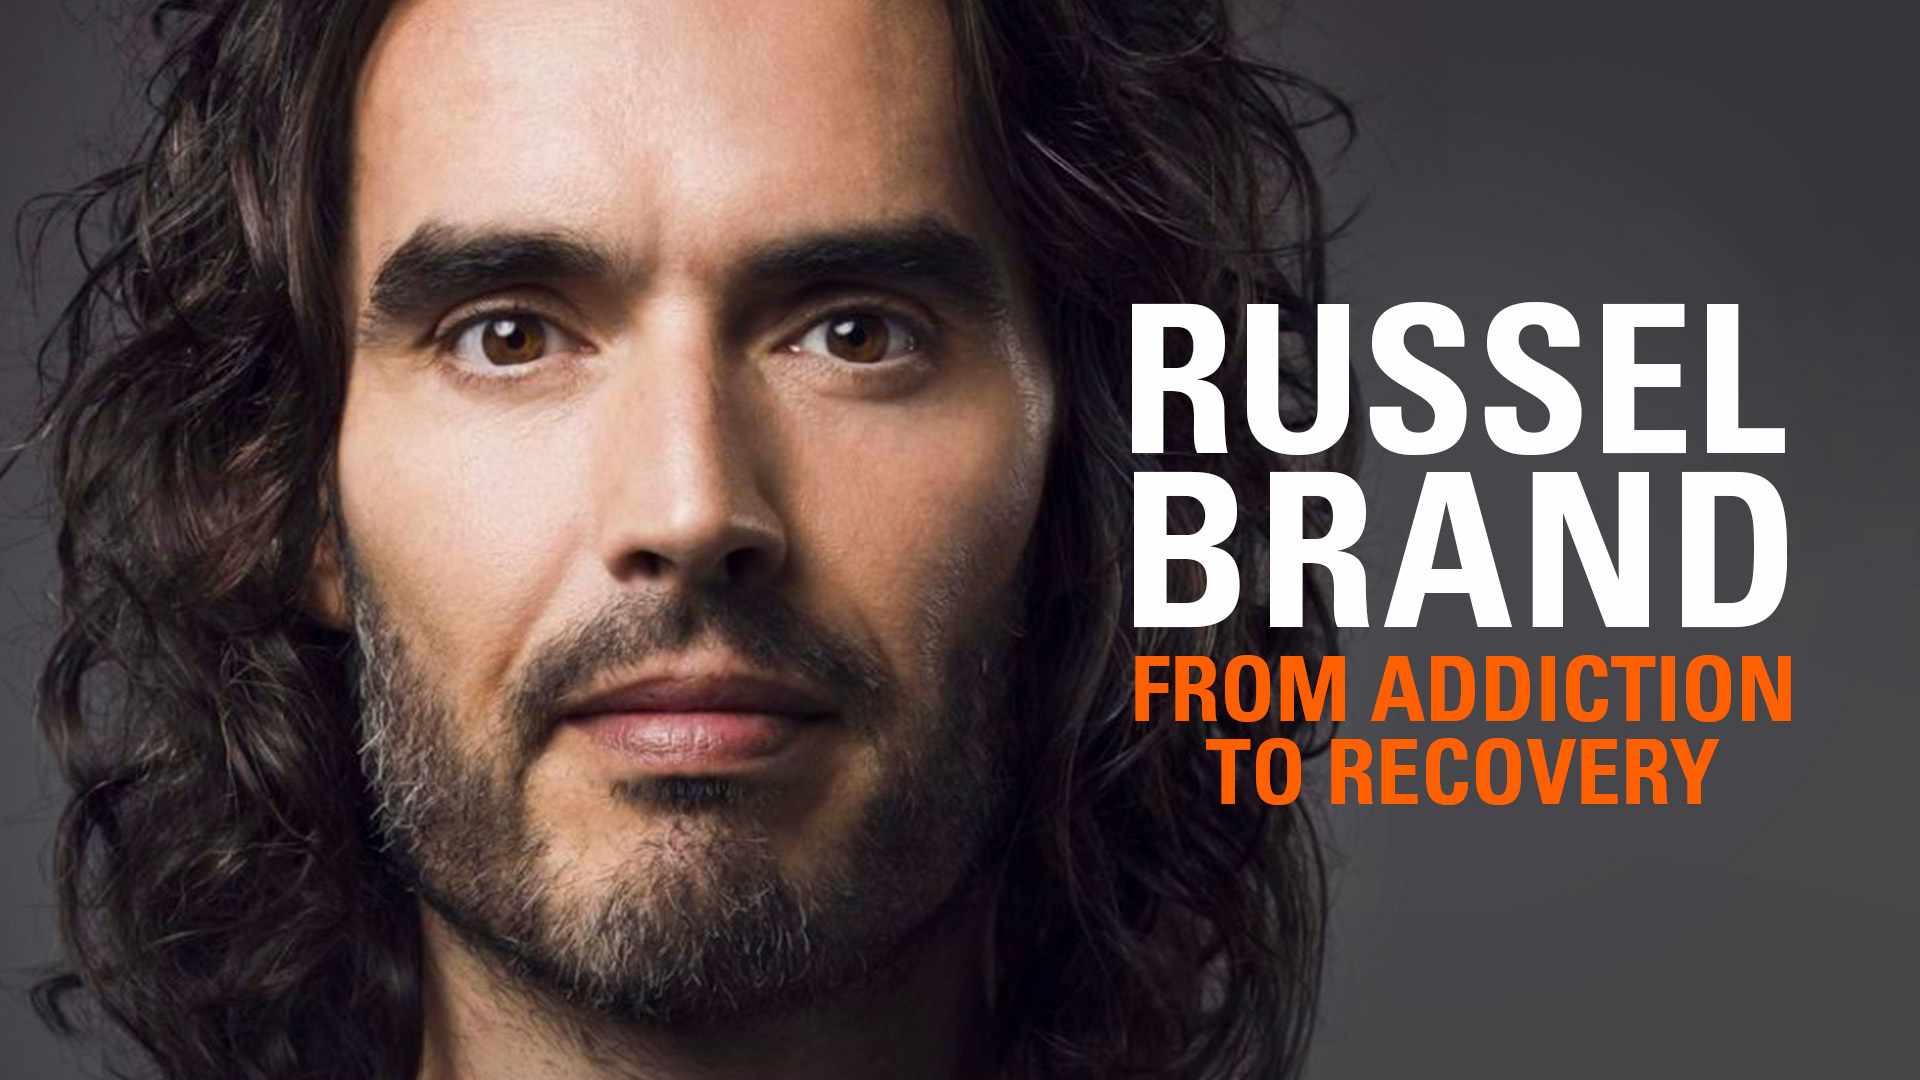 Russell Brand: From Addiction to Recovery